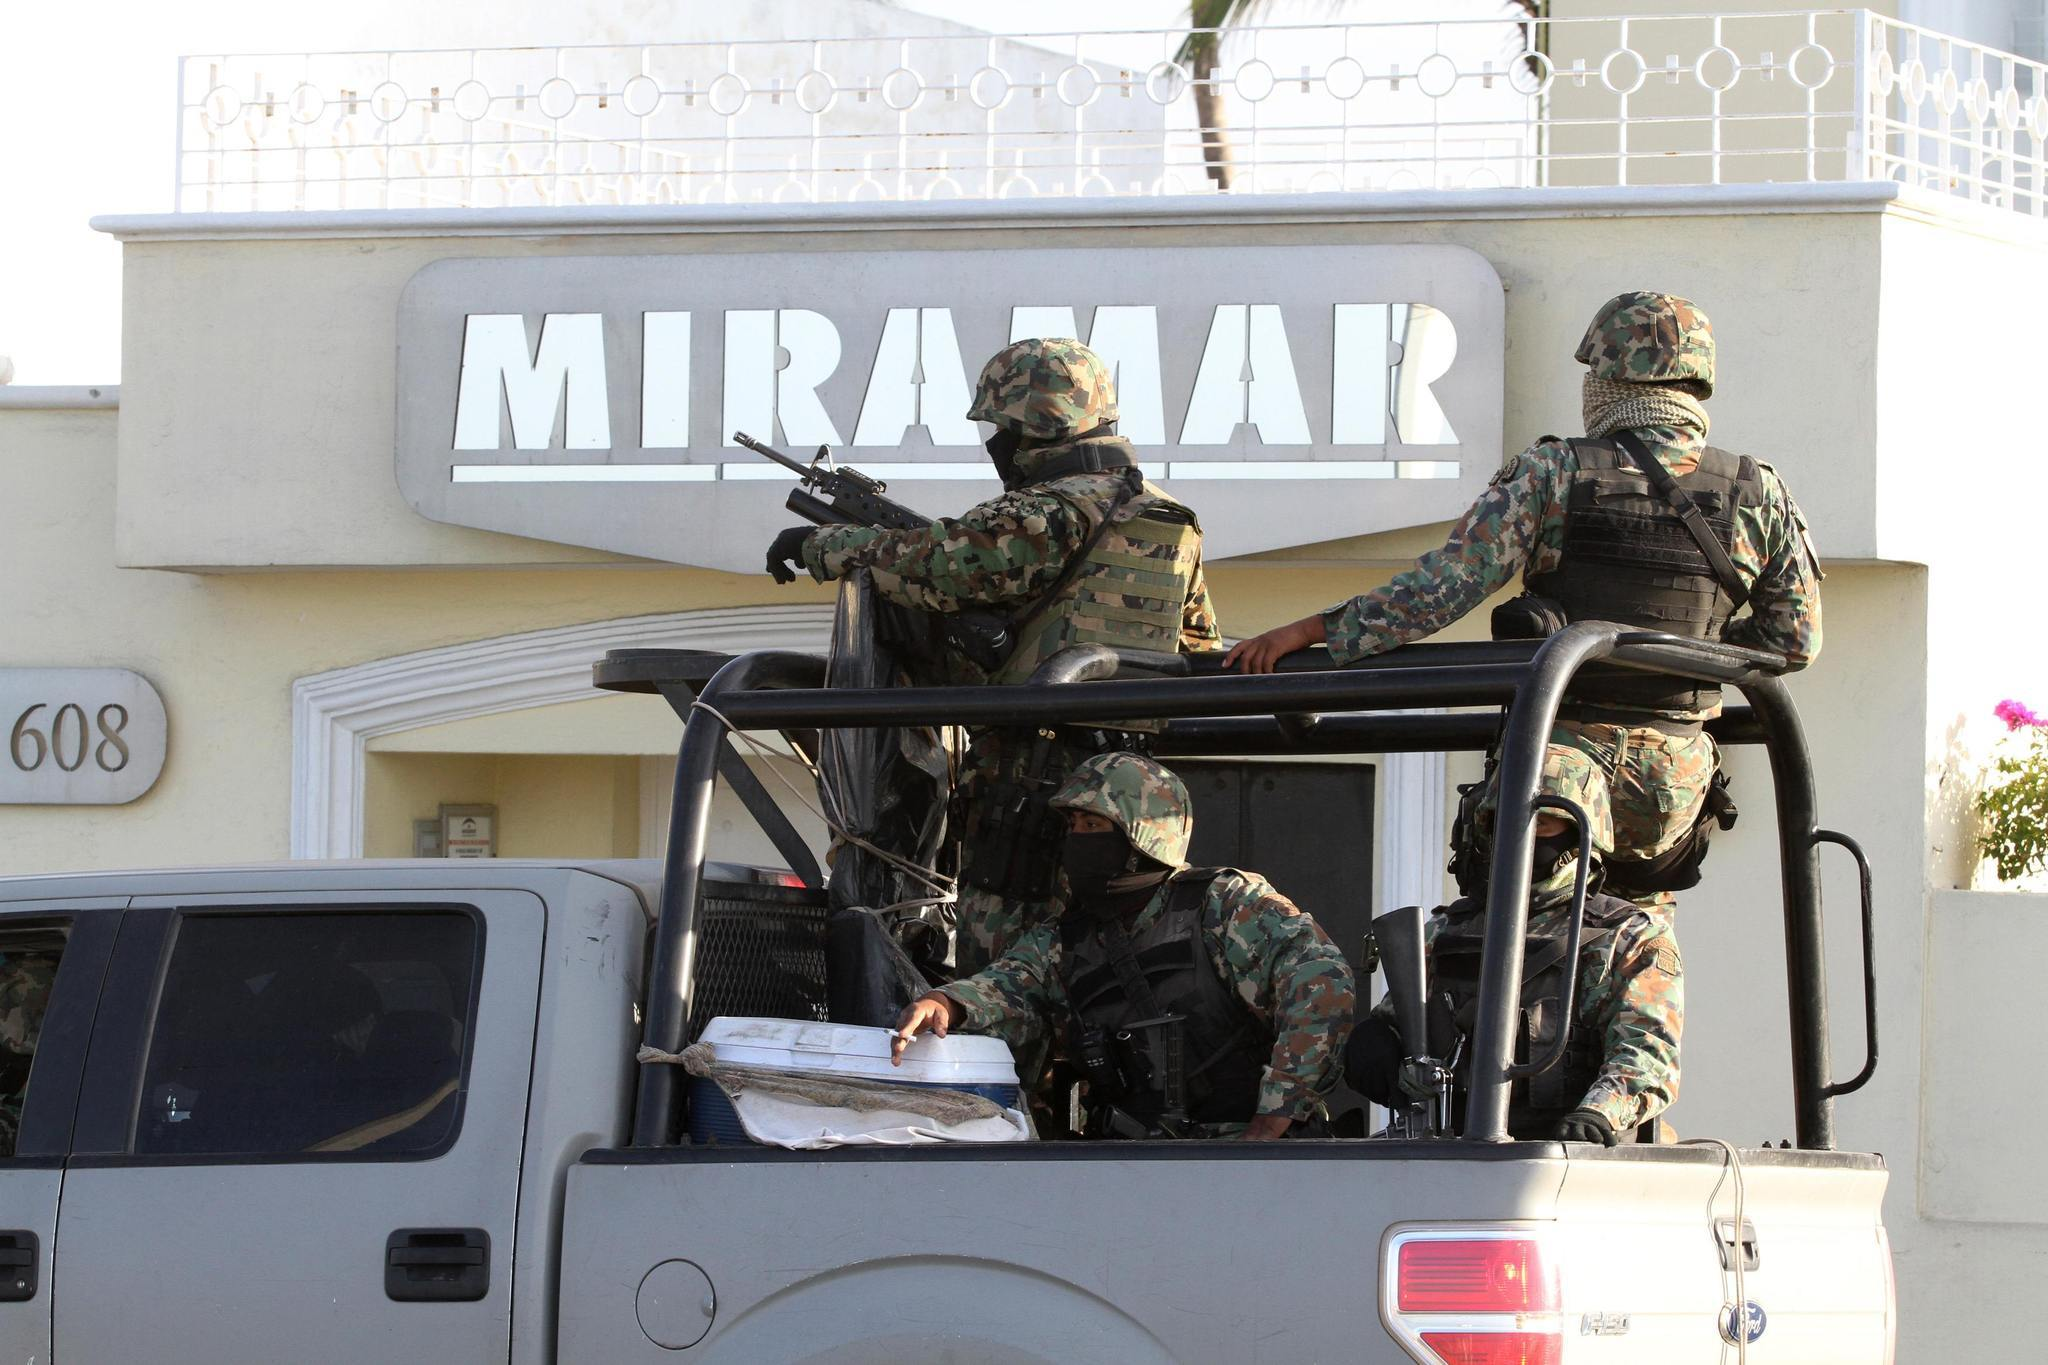 """Military personnel stand atop a truck outside the Miramar building during a raid in Mazatlan. Mexico's most wanted man, drug kingpin Joaquin """"Shorty"""" Guzman, has been captured in Mexico by U.S. and Mexican law enforcement officials, a U.S. government source confirmed on Saturday."""